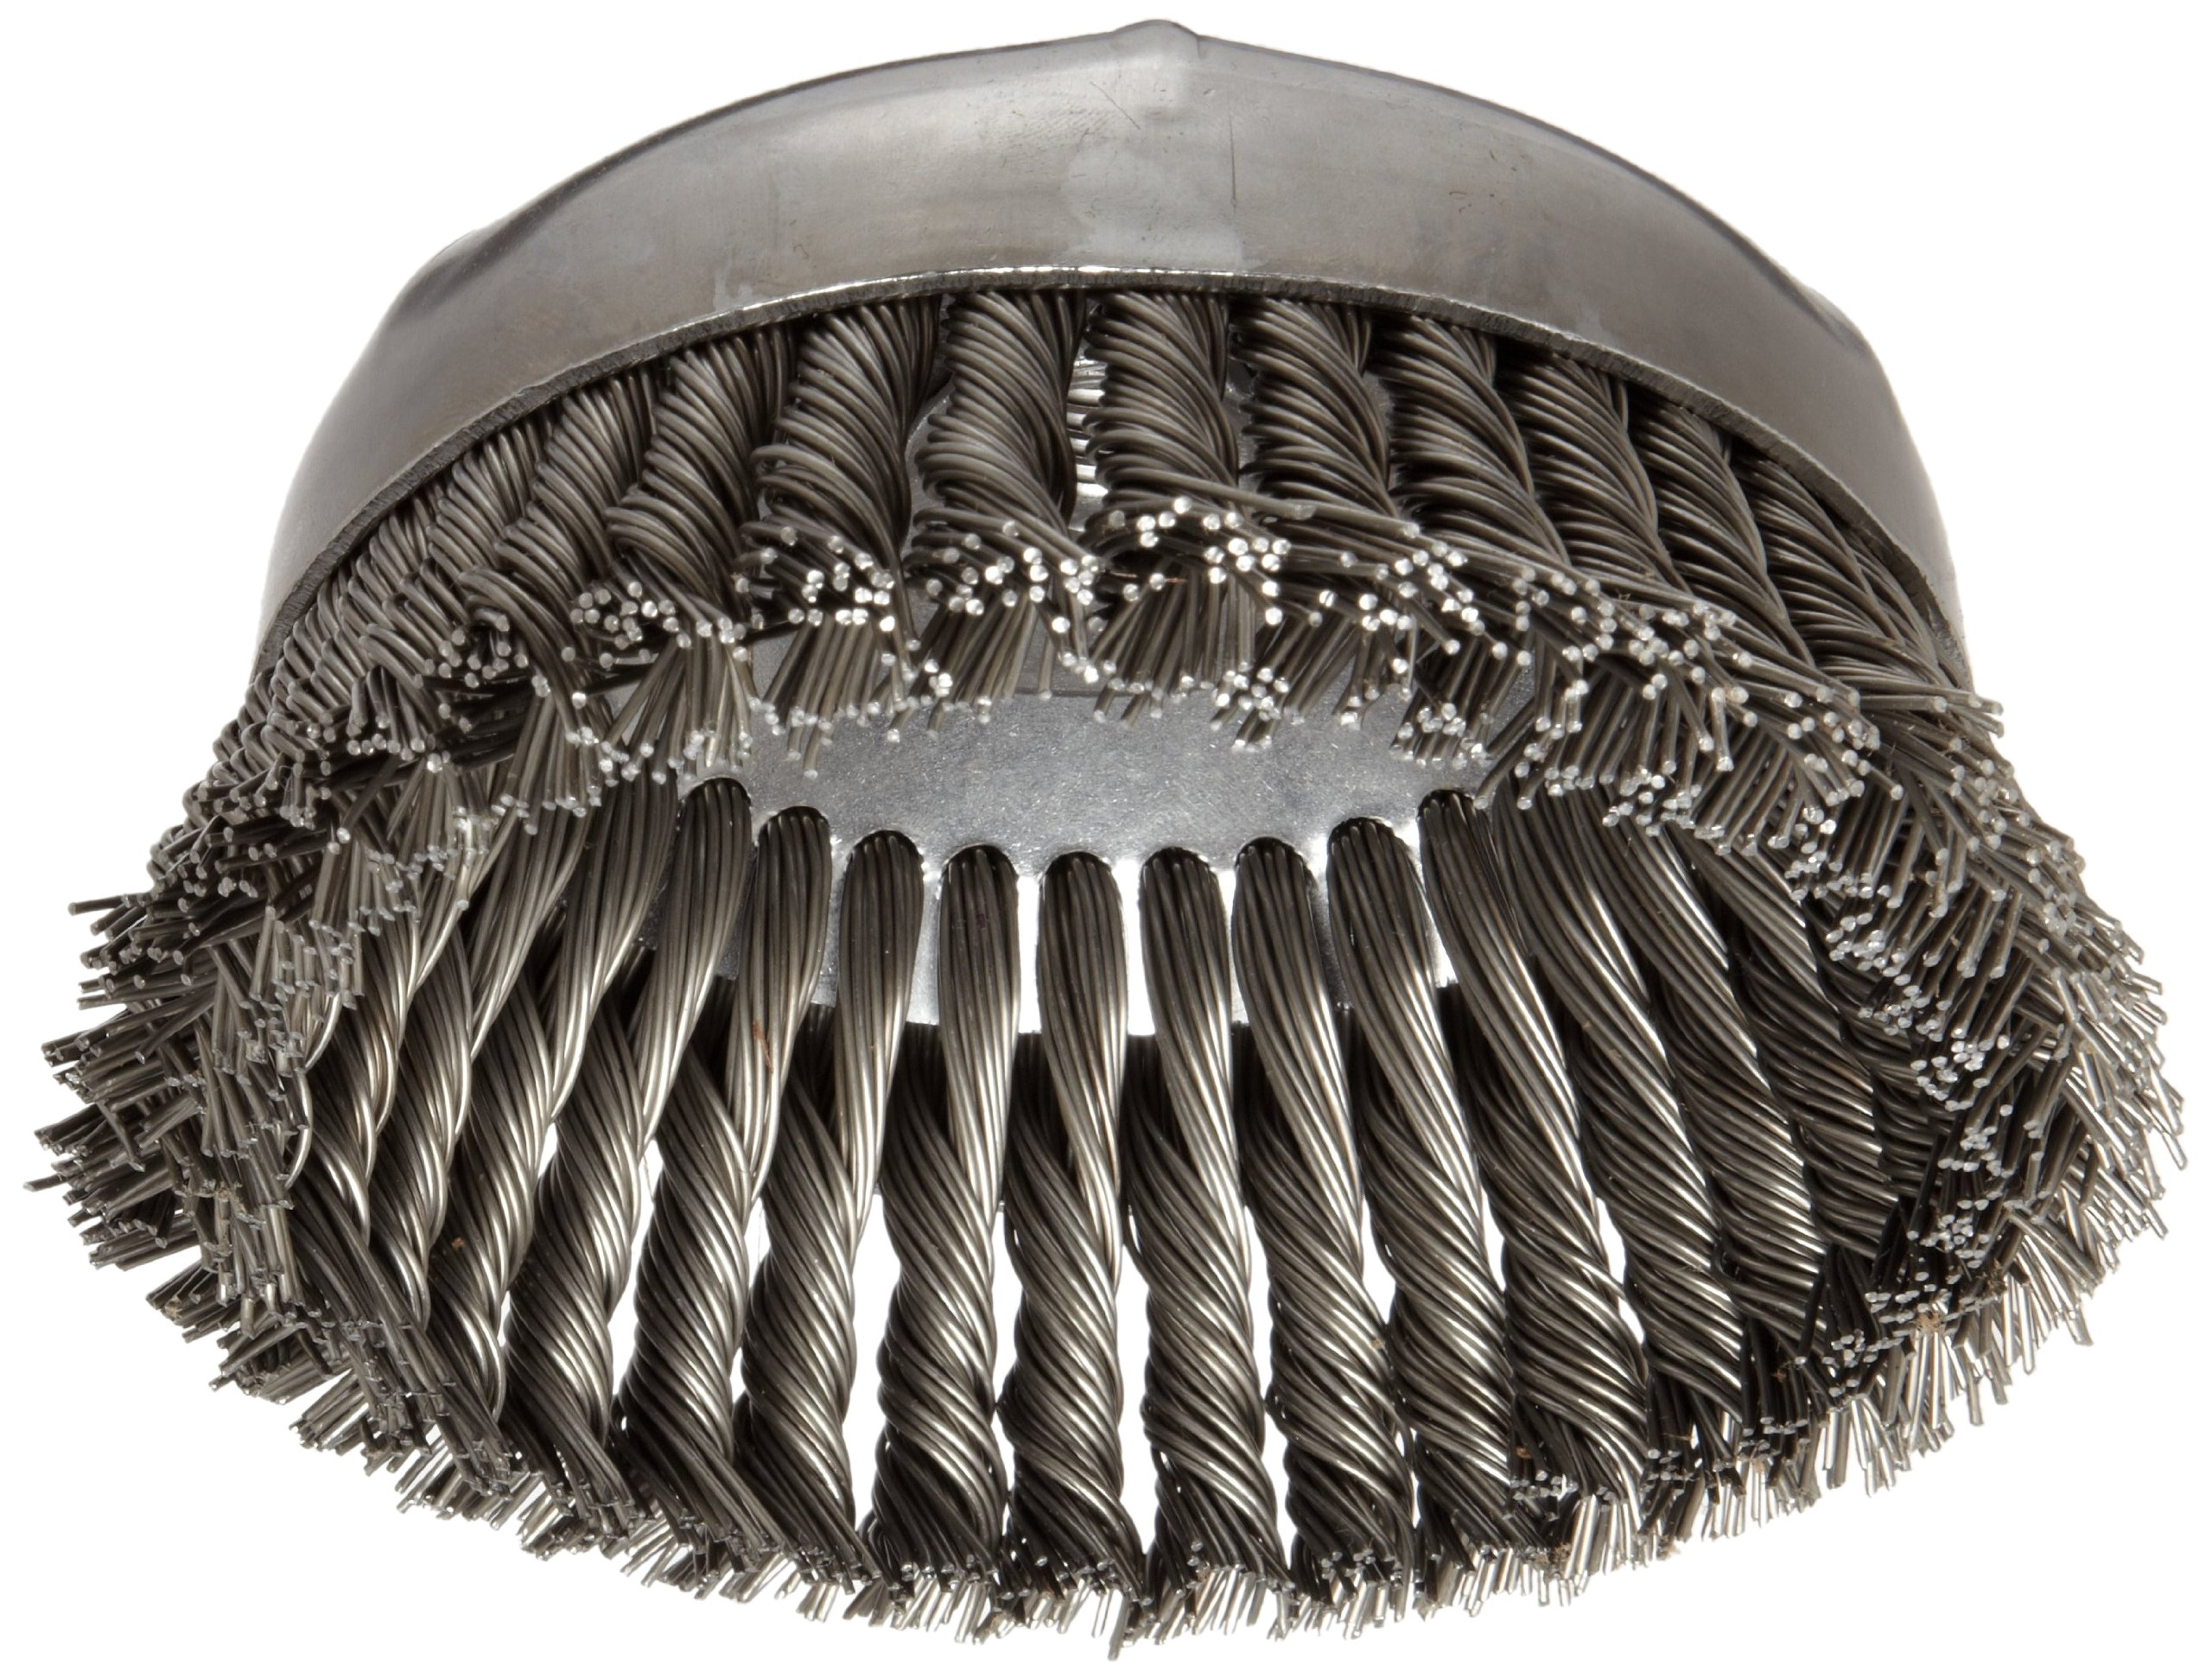 "Weiler 12396 Wire Cup Brush, Threaded Hole, Steel, Partial Twist Knotted, Single Row, 6"" Diameter, 0.035"" Wire Diameter, 5/8""-11 Arbor, 1-3/8"" Bristle Length, 6600 rpm"